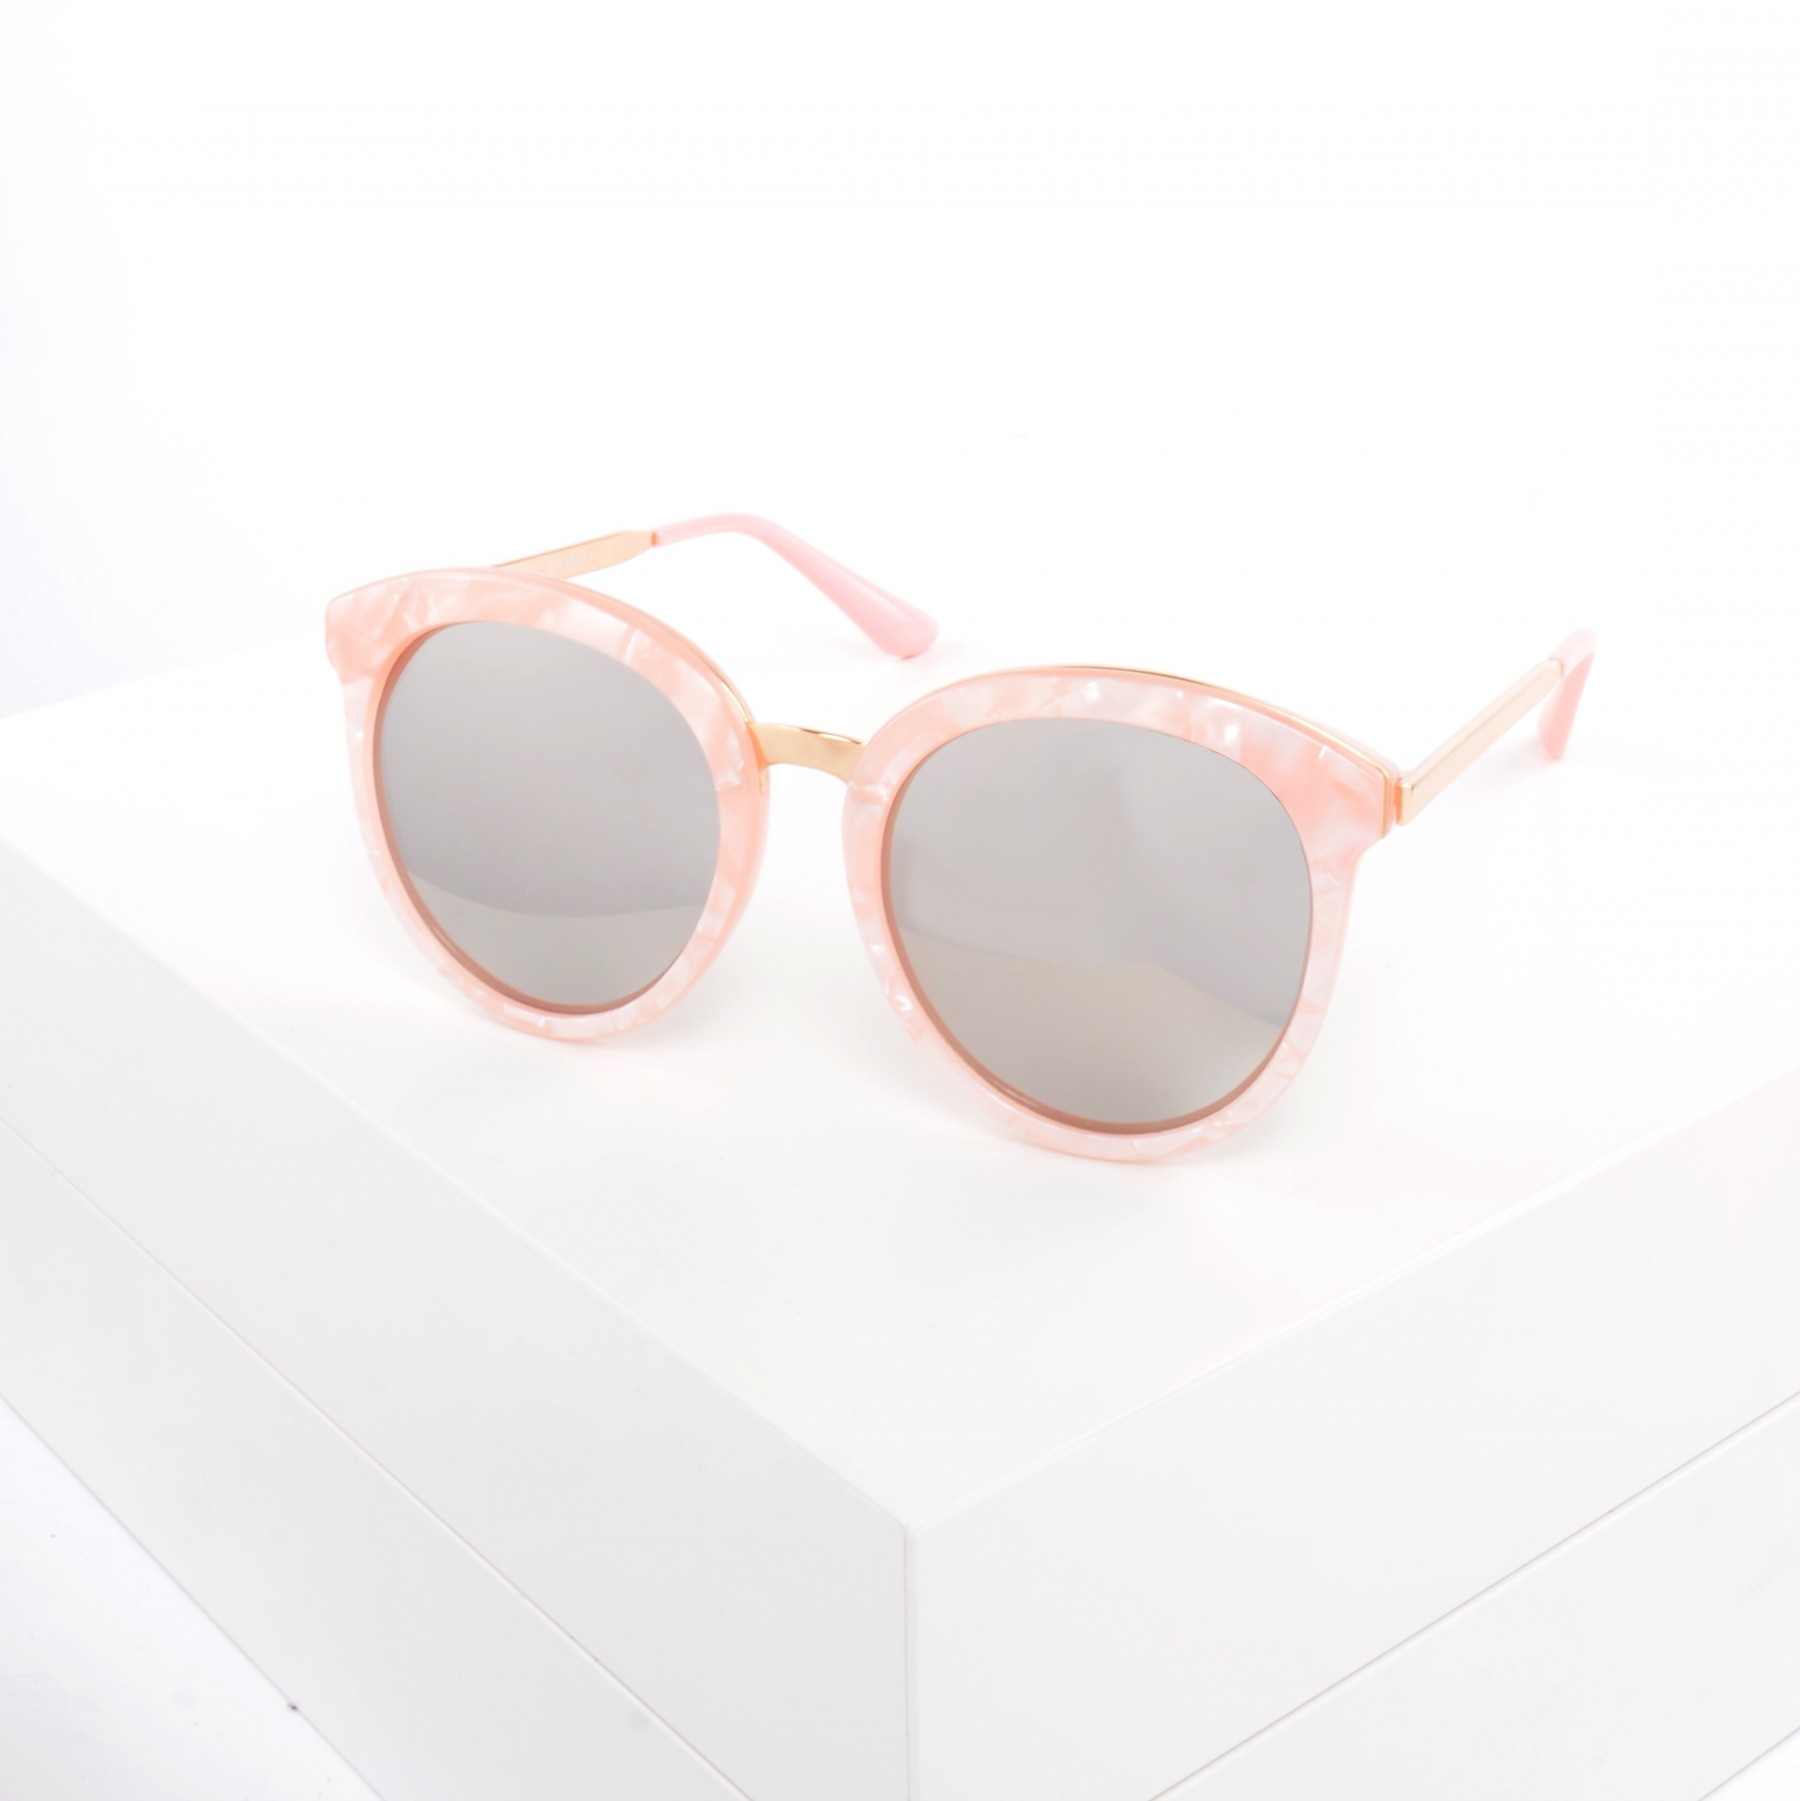 PINK MARBLE EFFECT OVERSIZED ROUND SUNGLASSES - £15.00